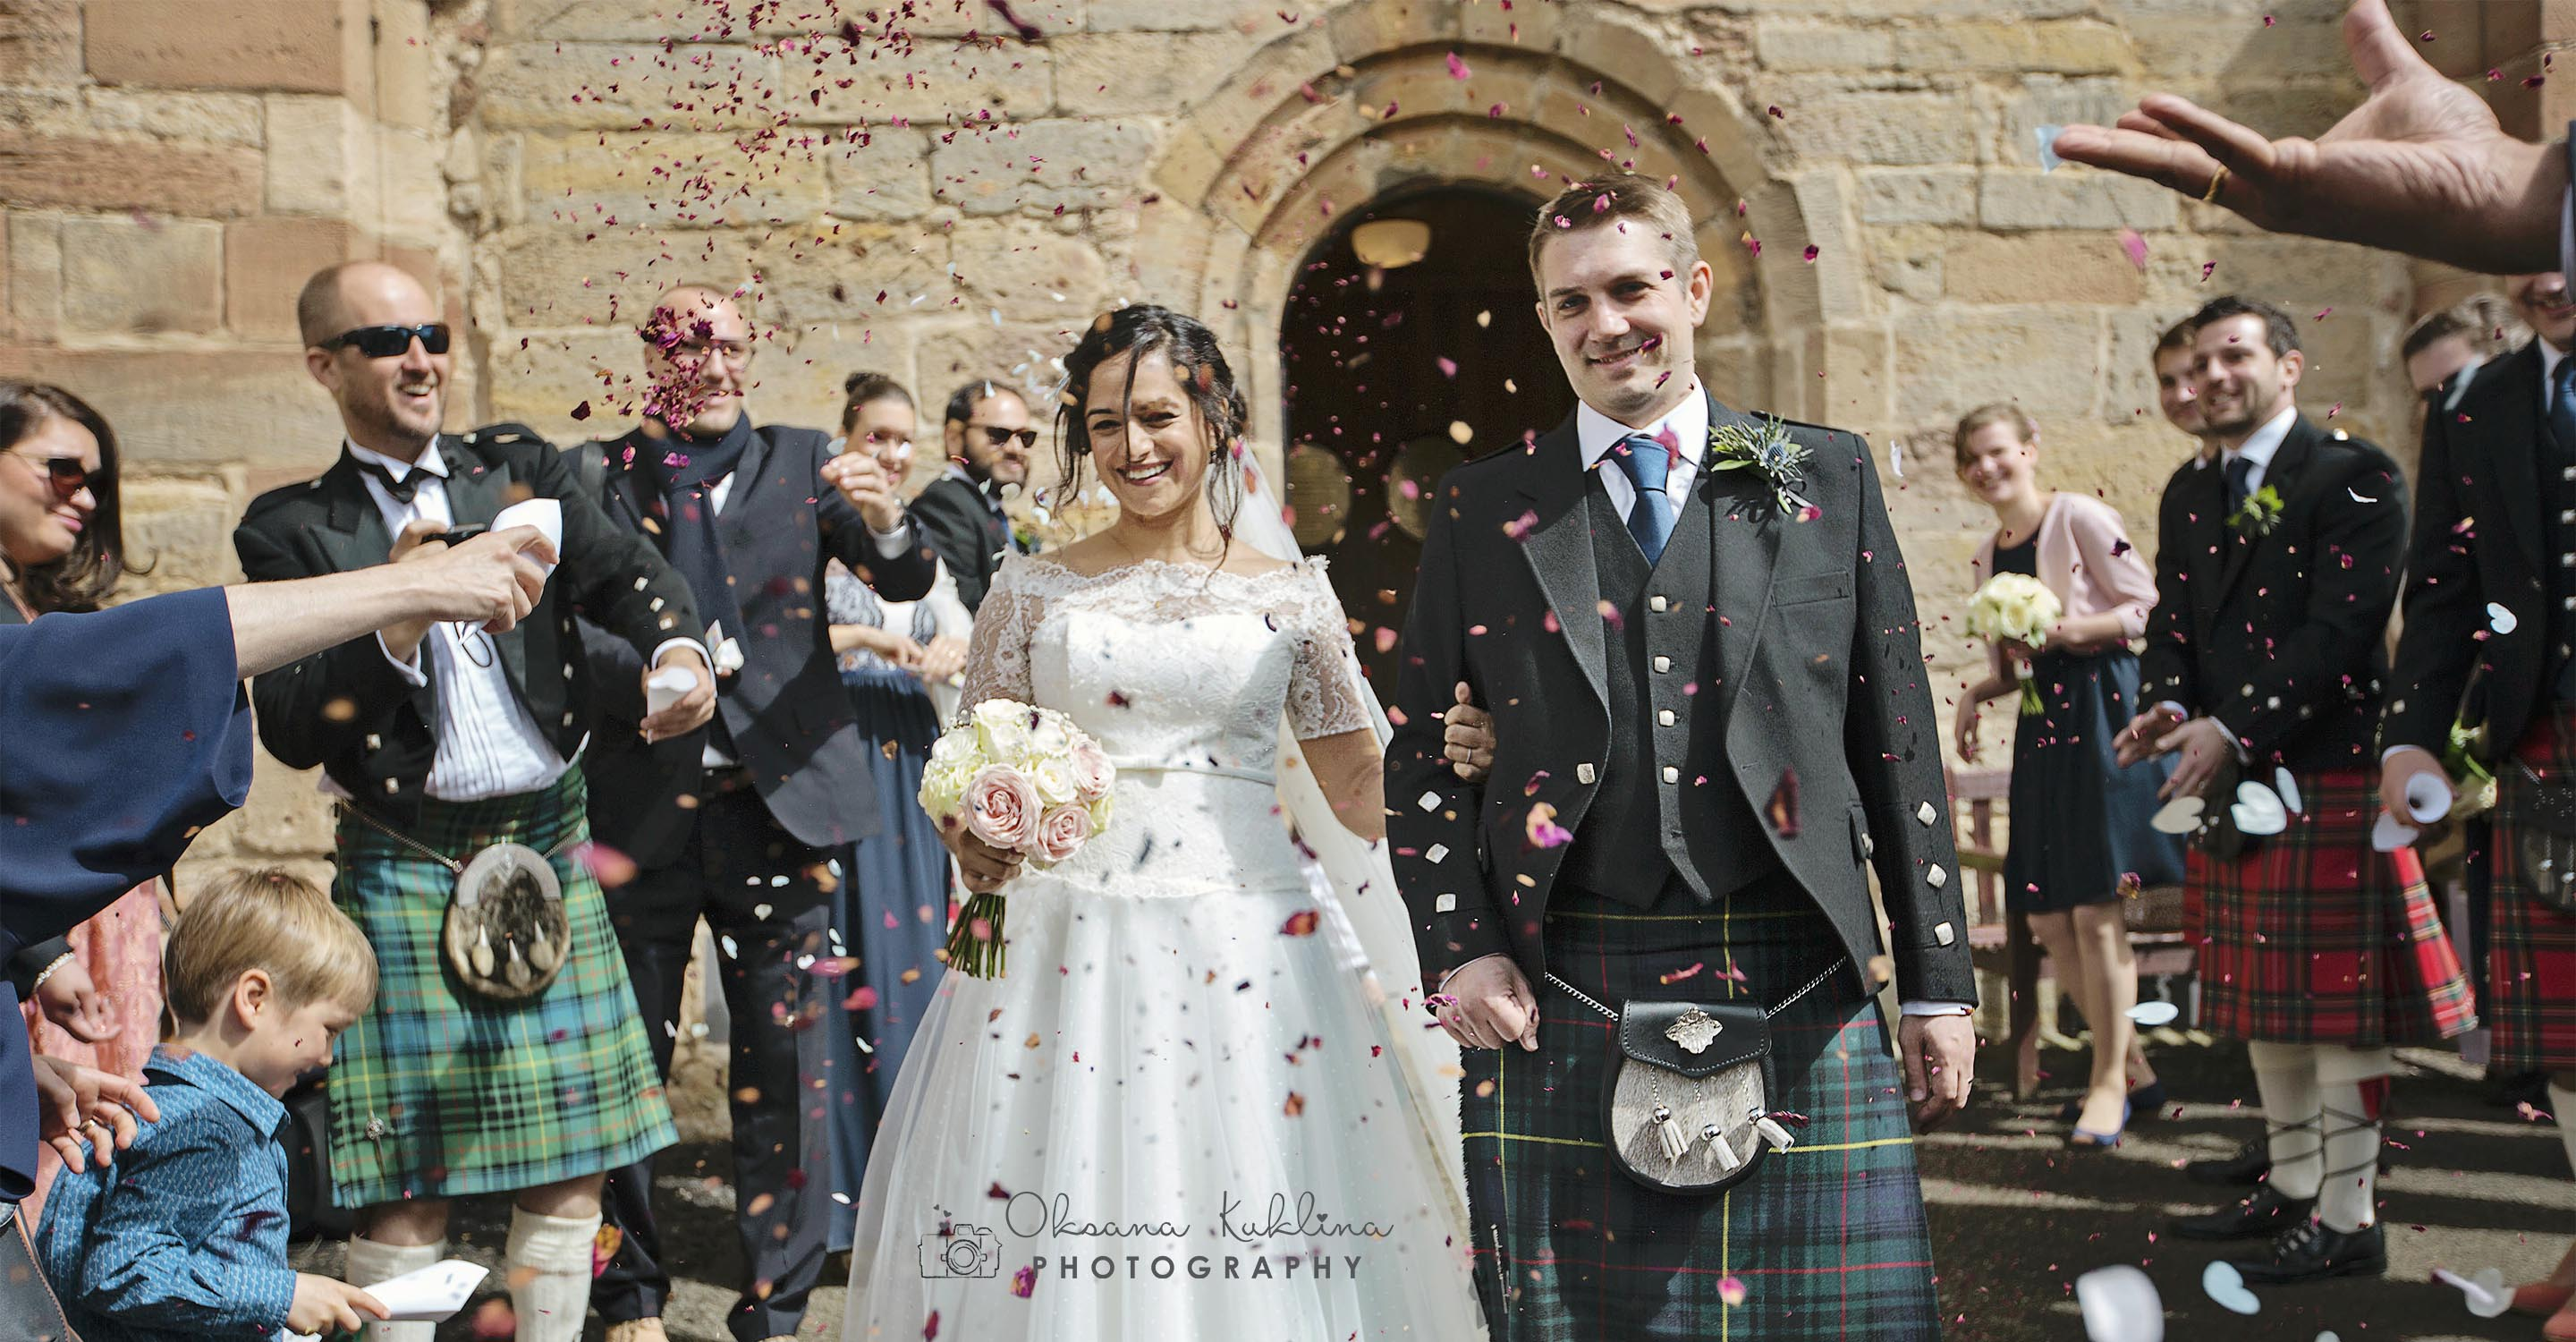 Oxenfoord Castle Wedding Photographer - Best Scotland Wedding Photography